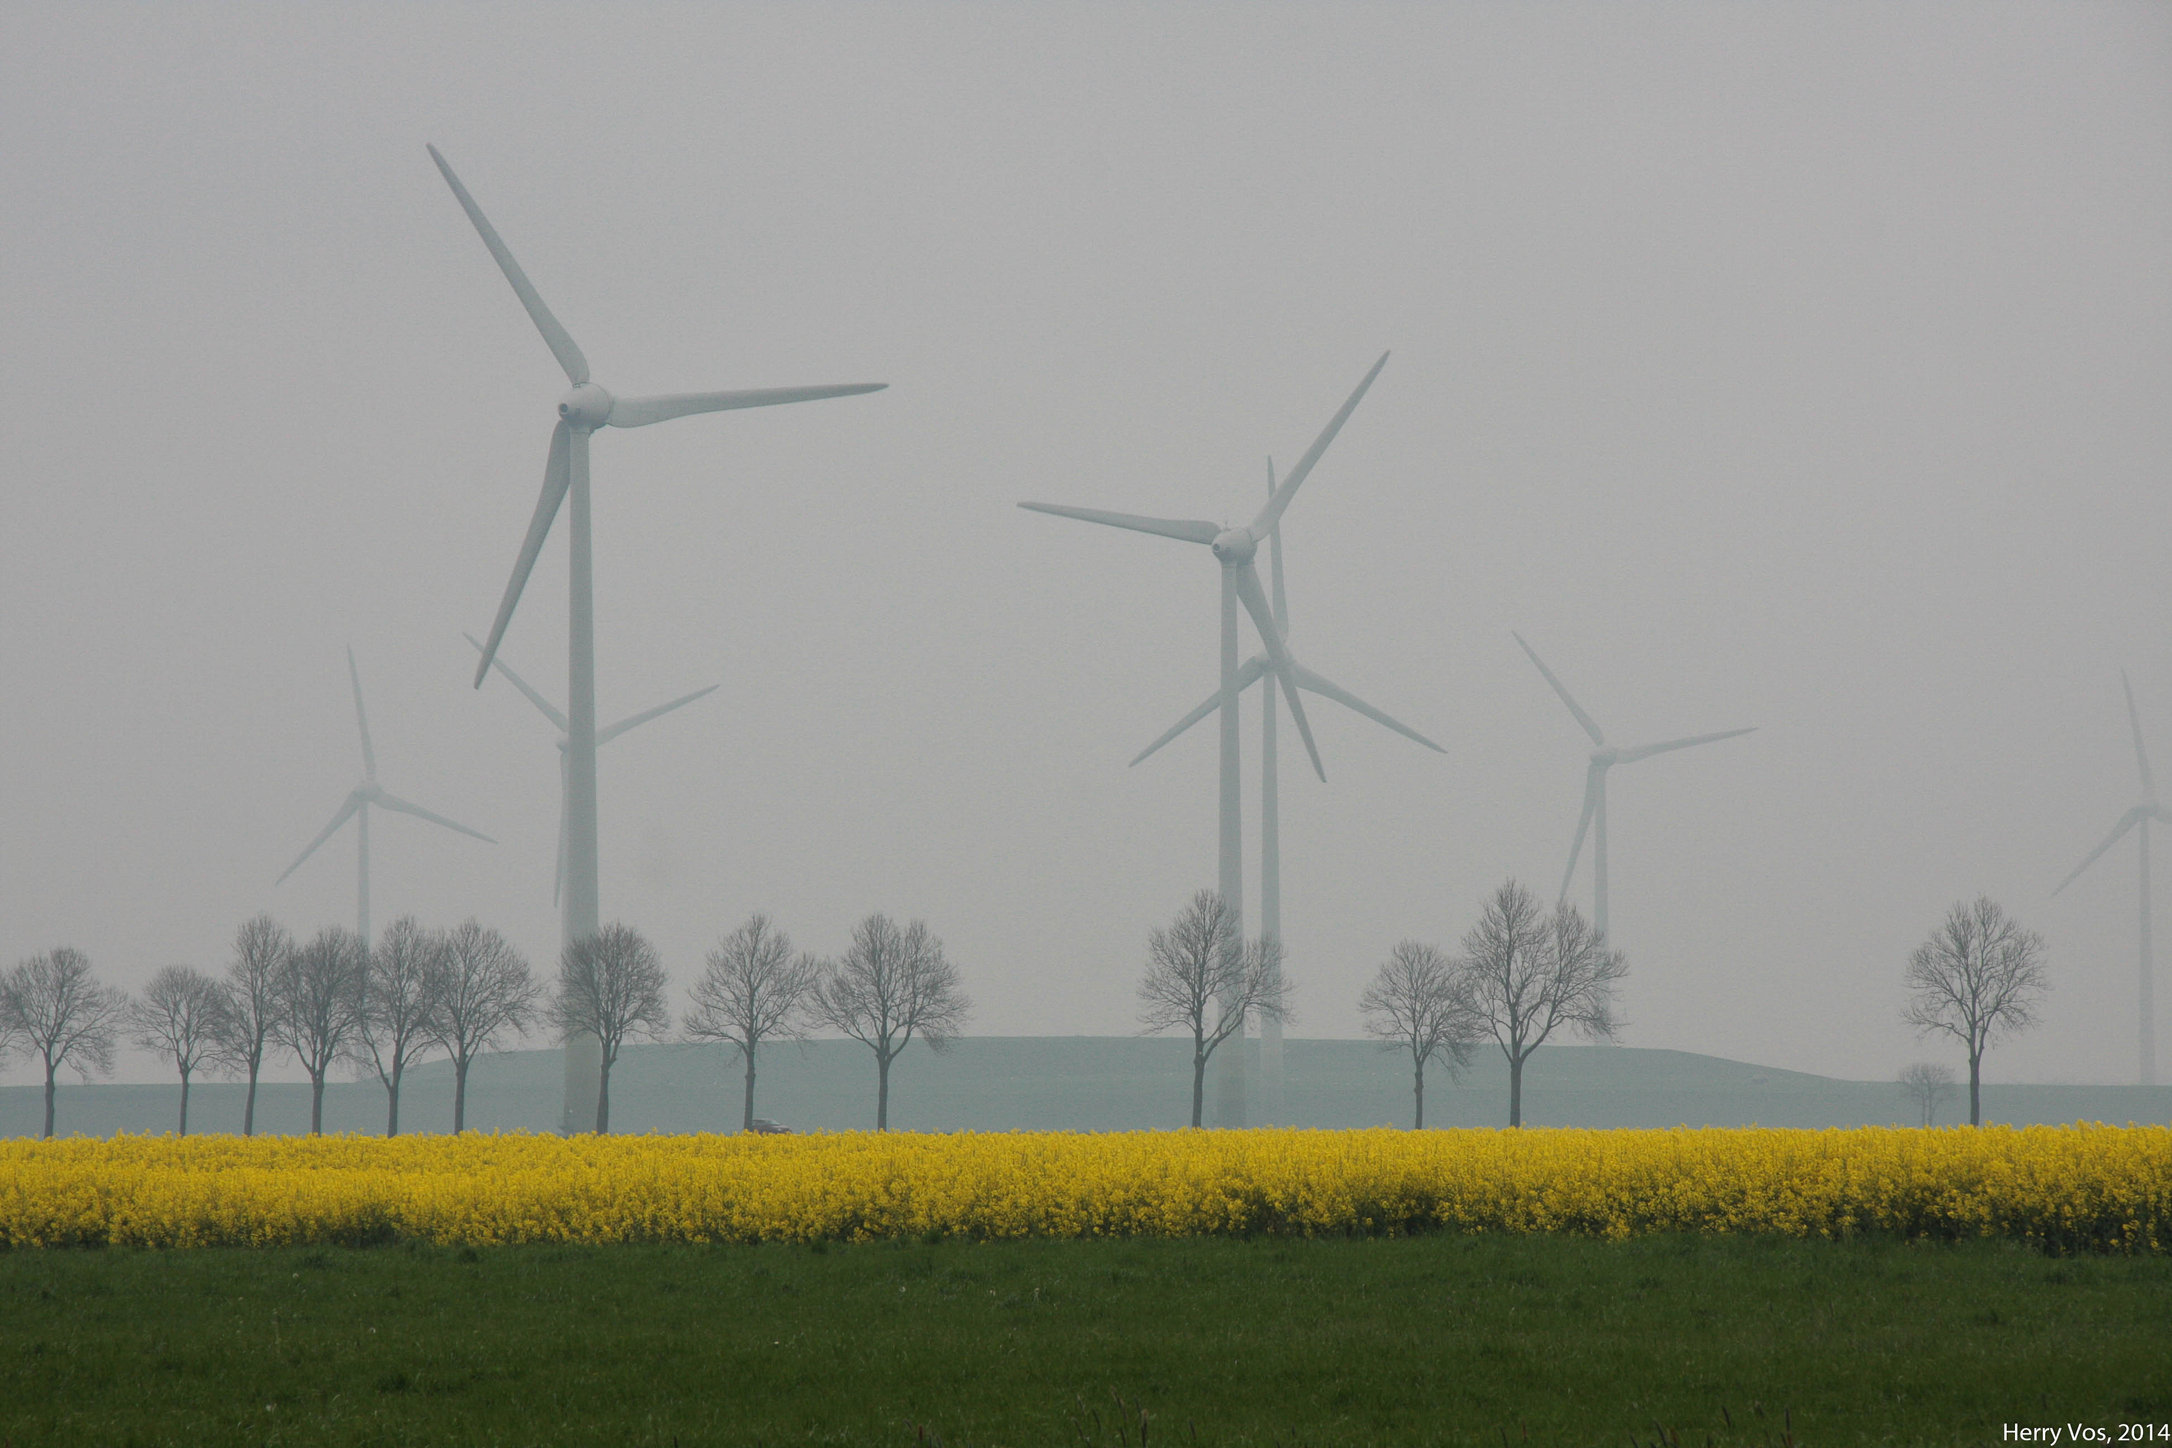 Rape and windpower